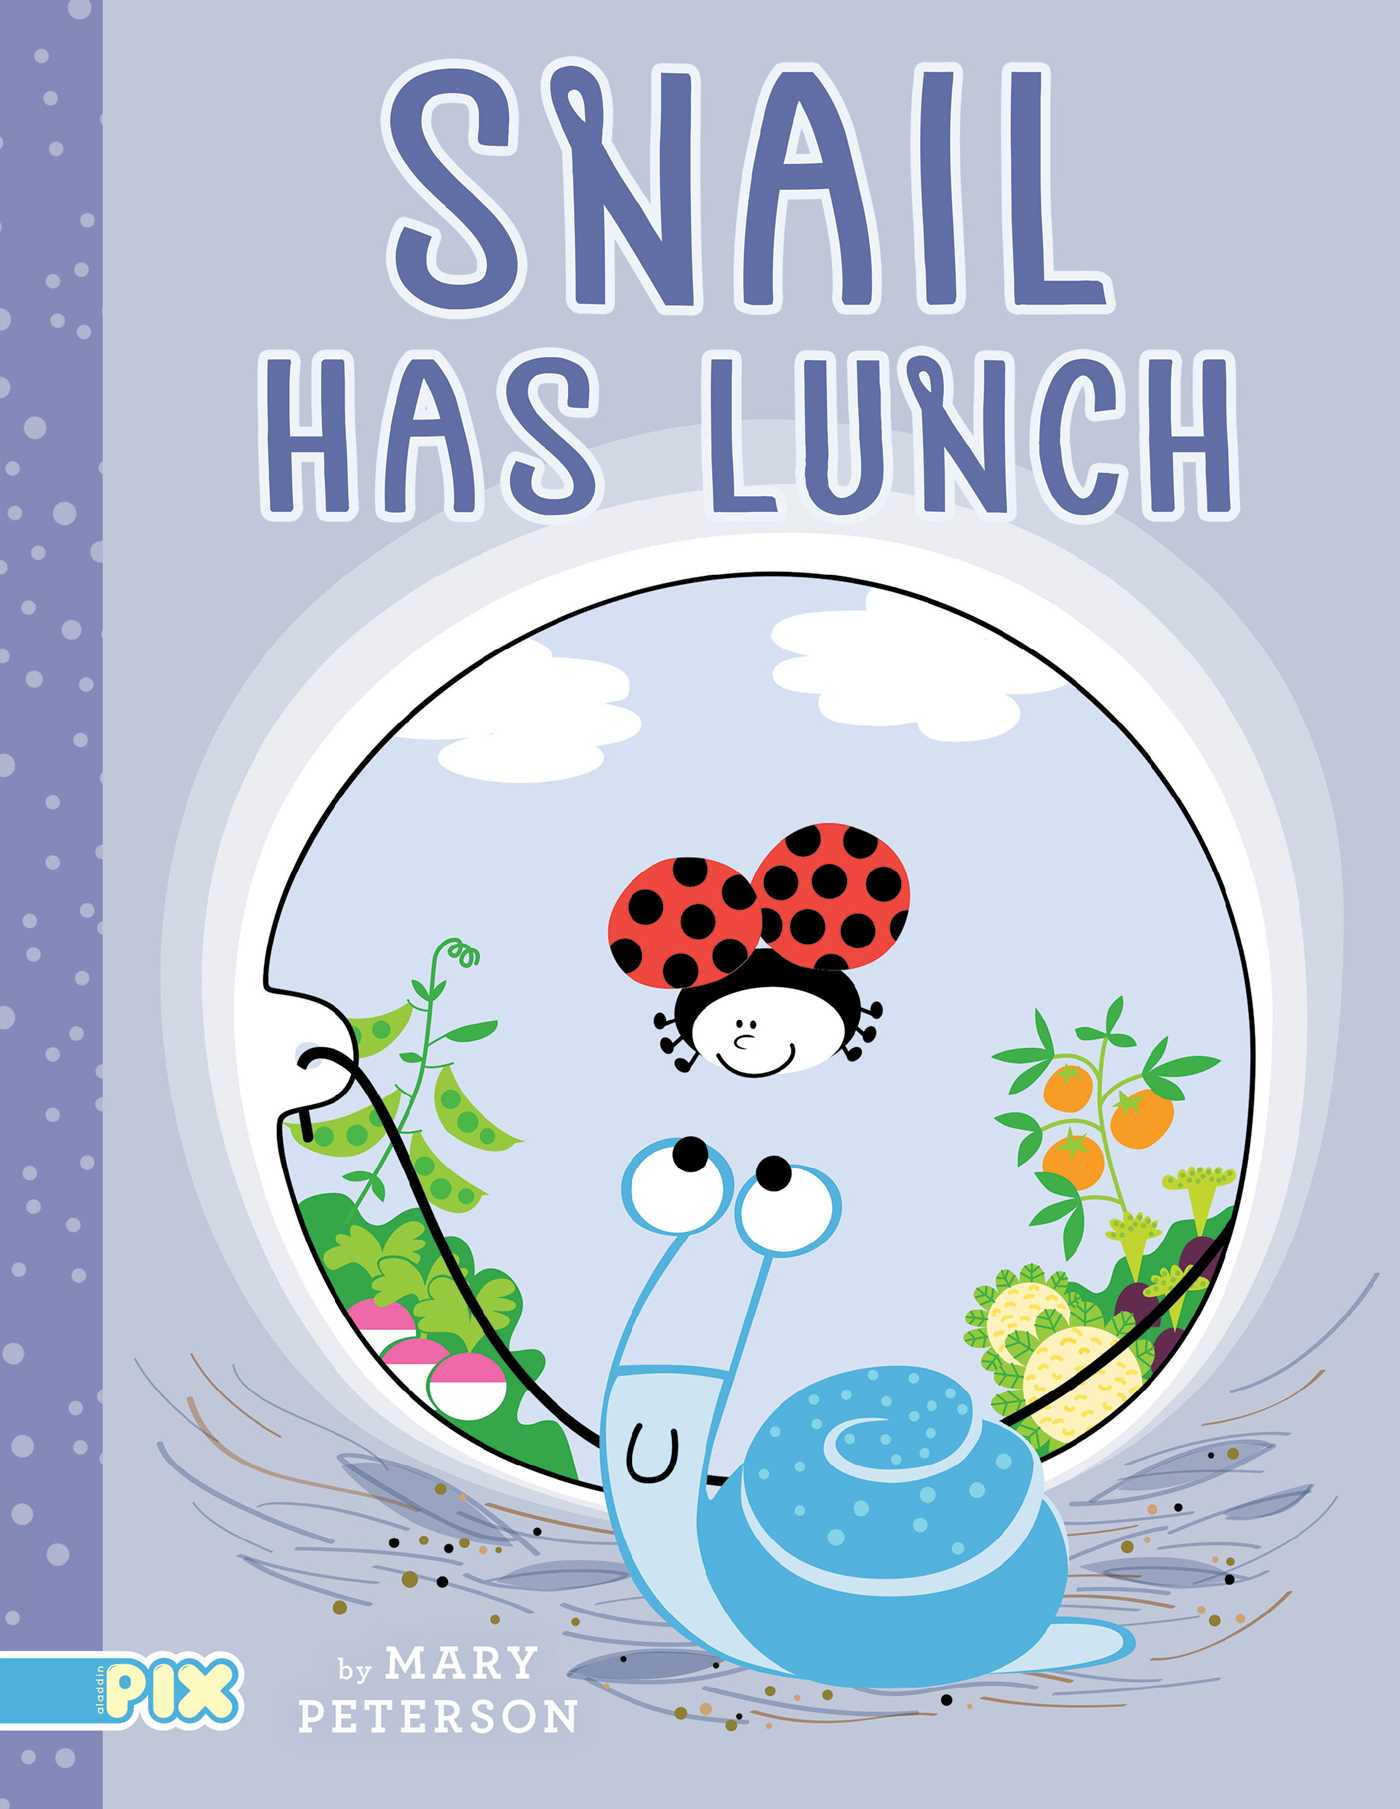 Snail has lunch 9781481453028 hr